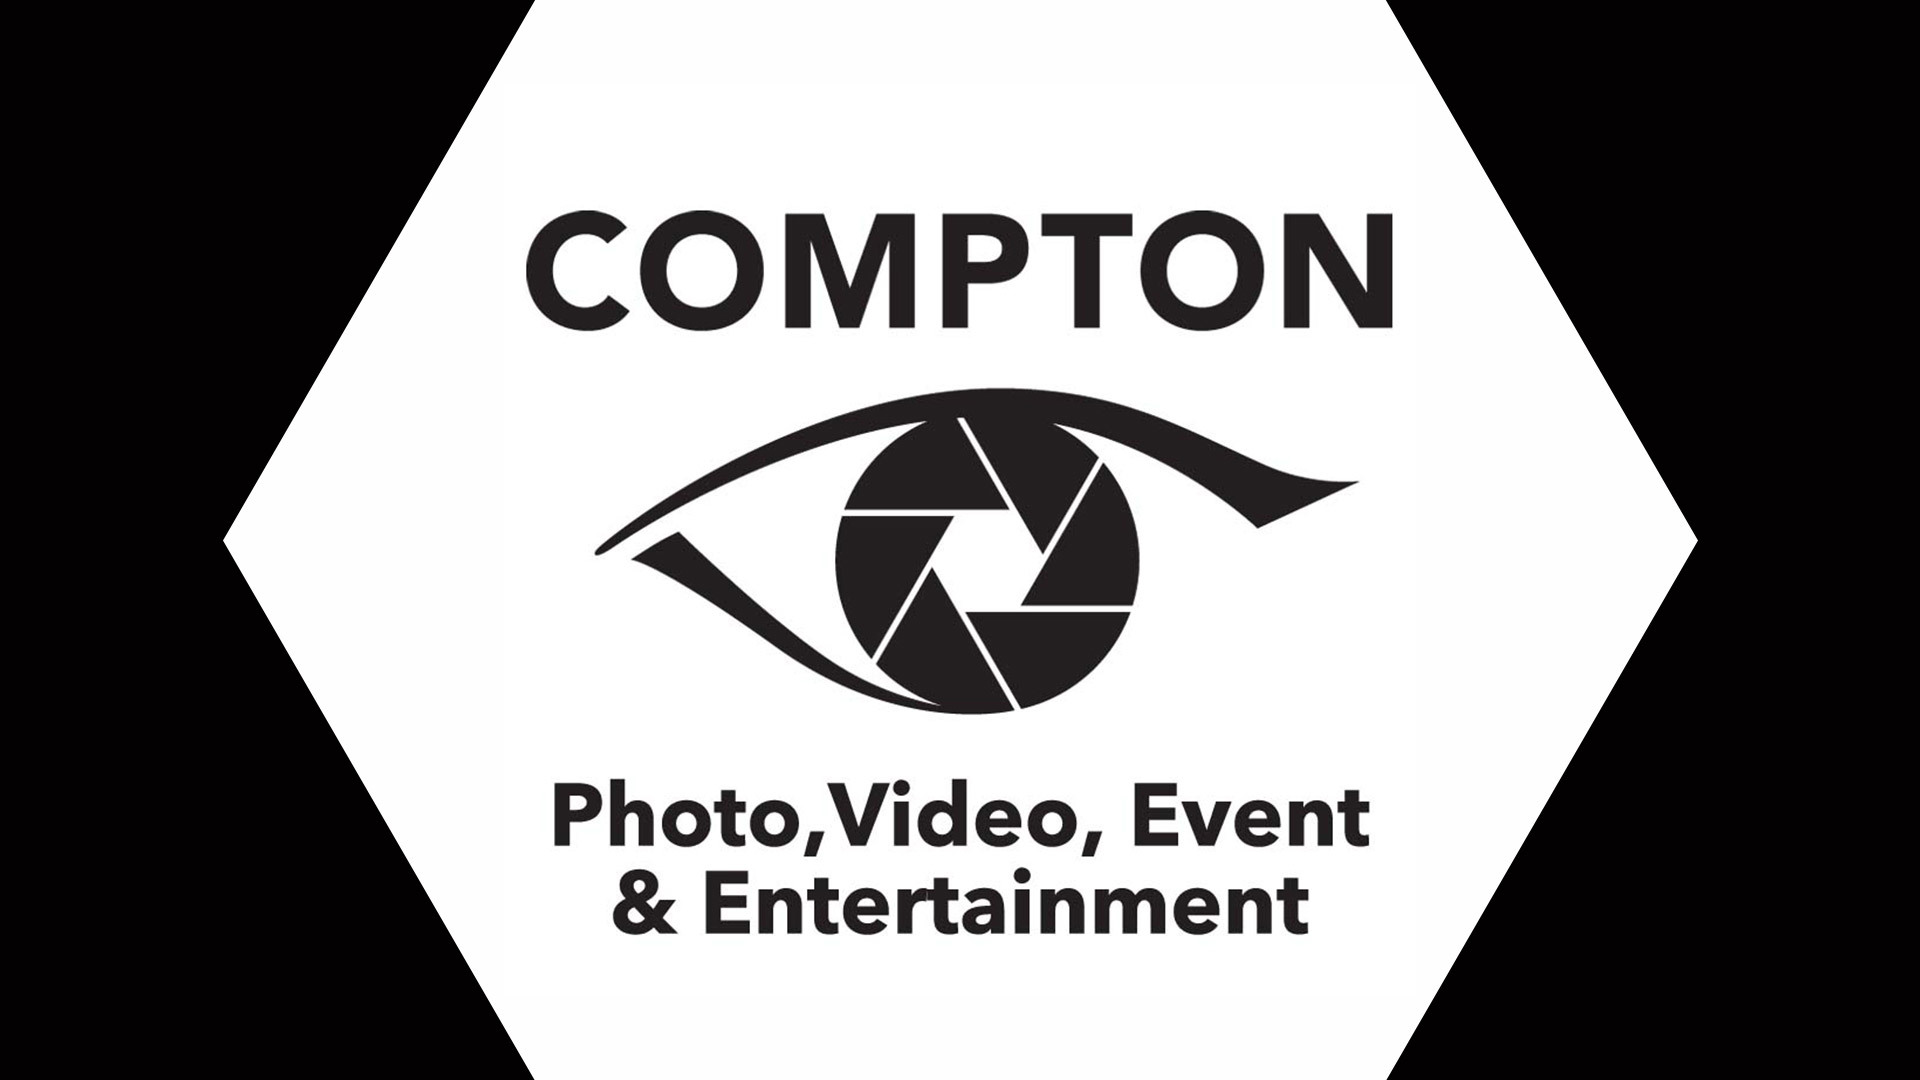 Compton Photo, Video, Event and Entertainment